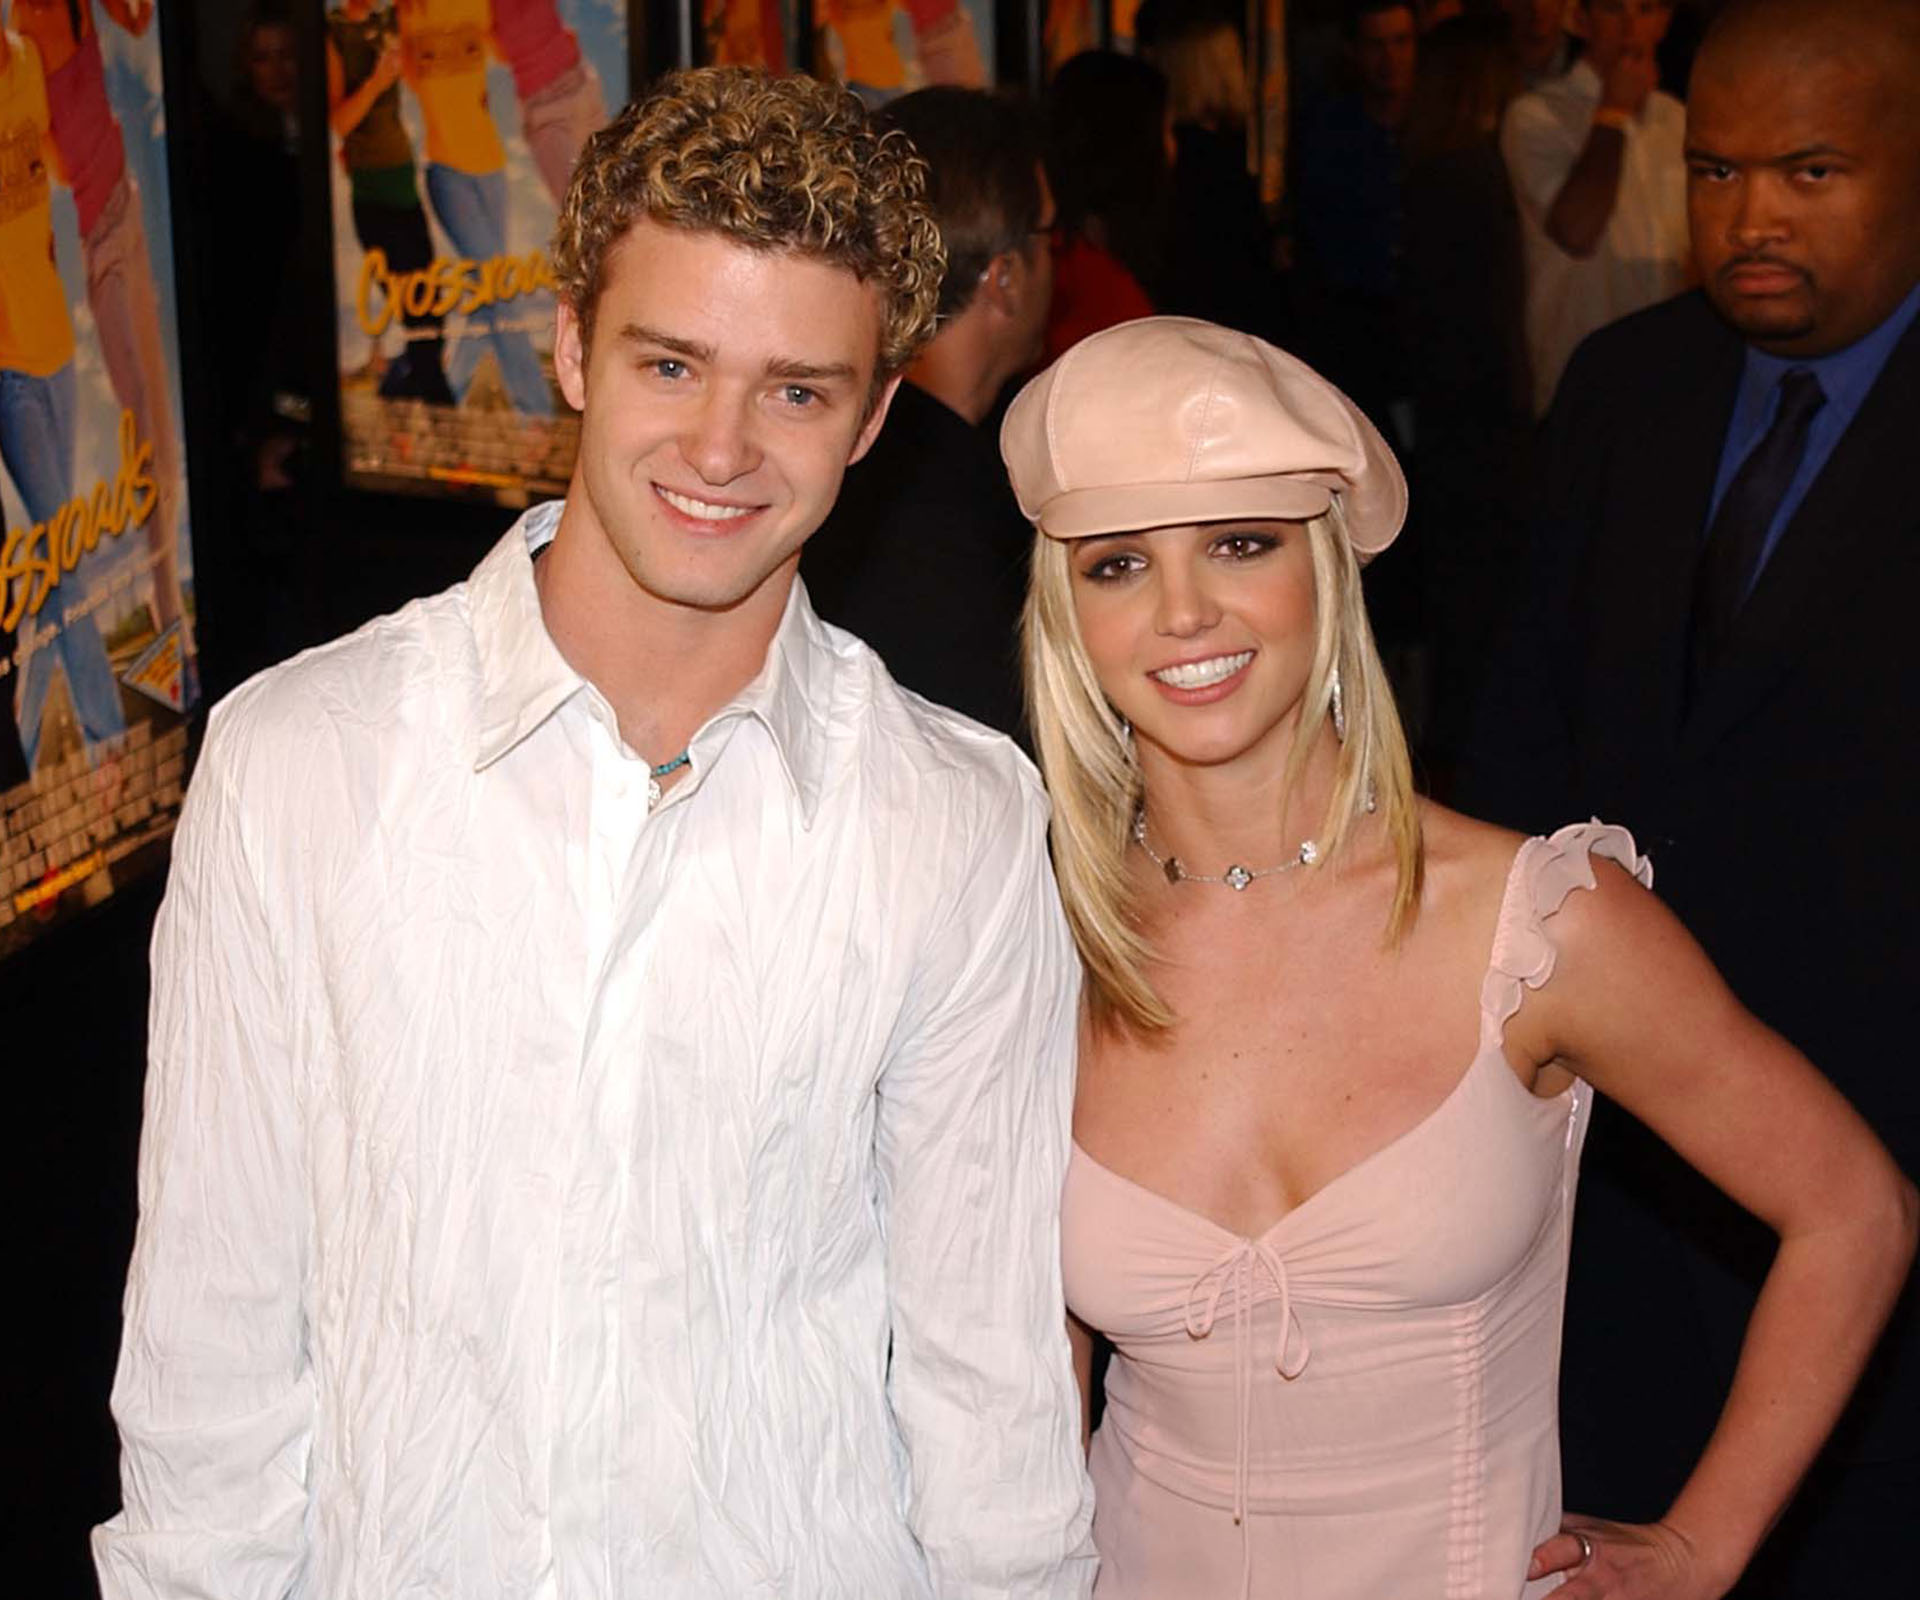 Justin Timberlake and Britney Spears Collab on the way?